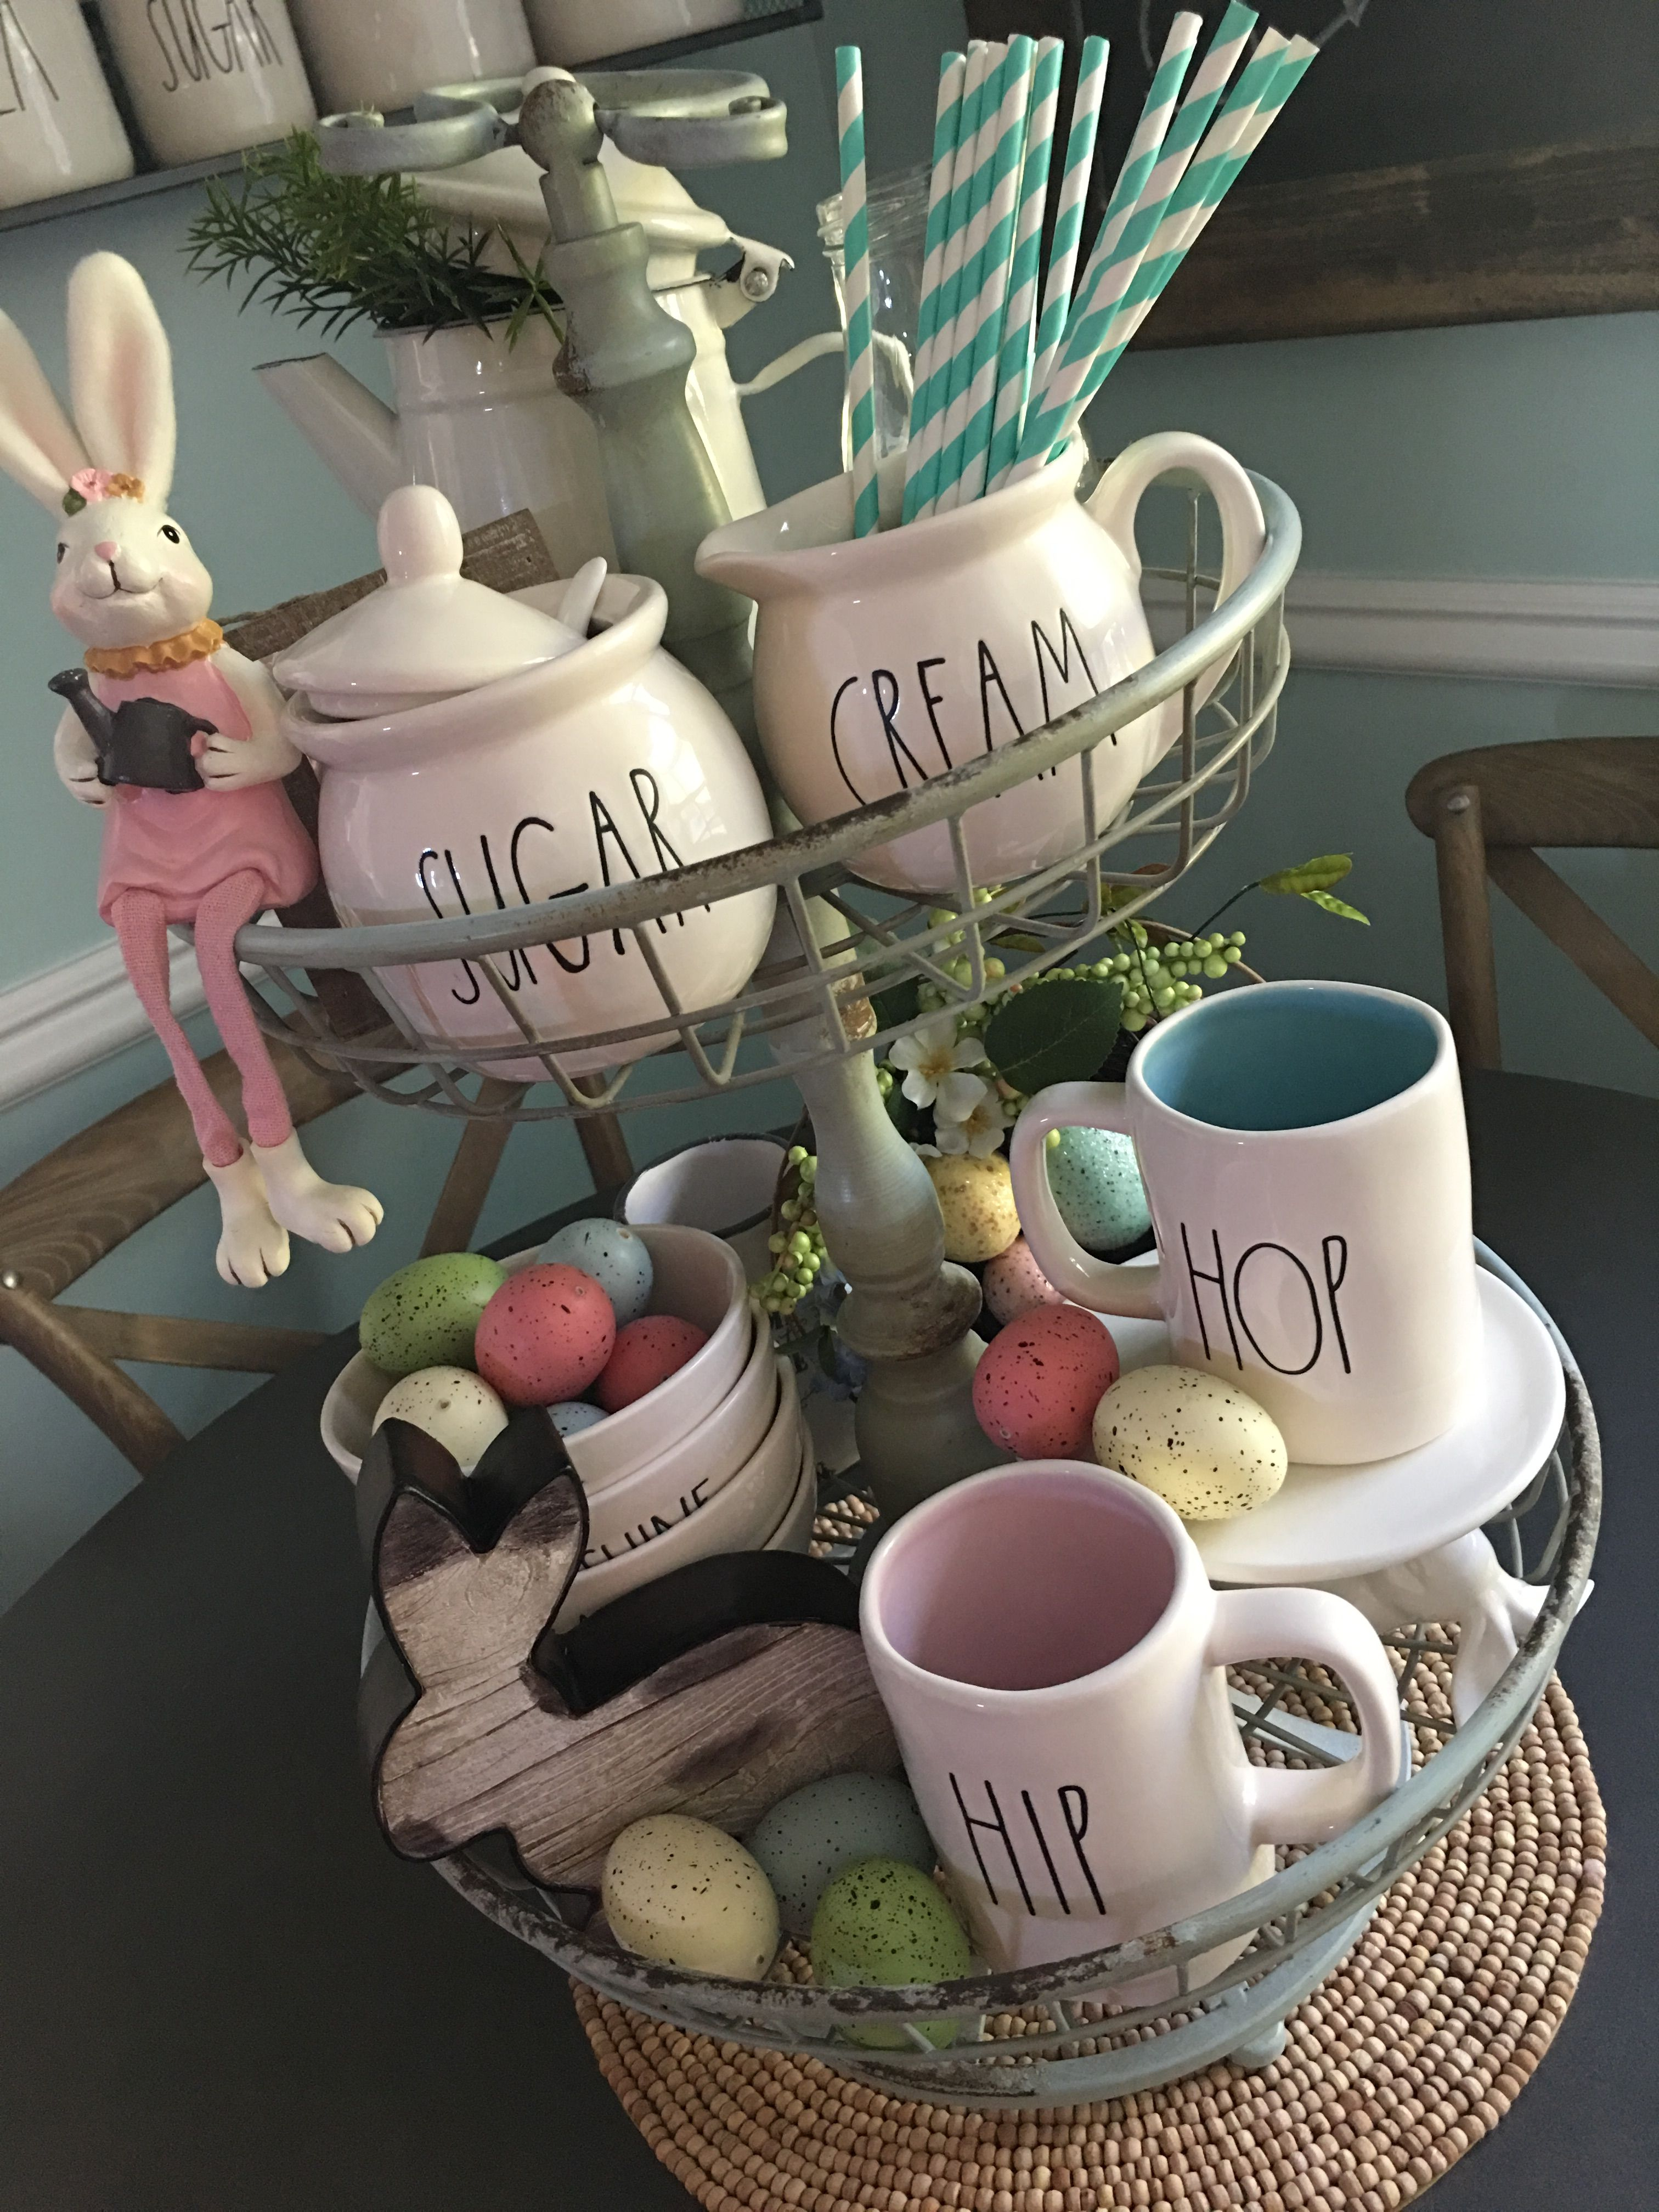 Cute Rae Dunn Easter display in 2020 Spring easter decor